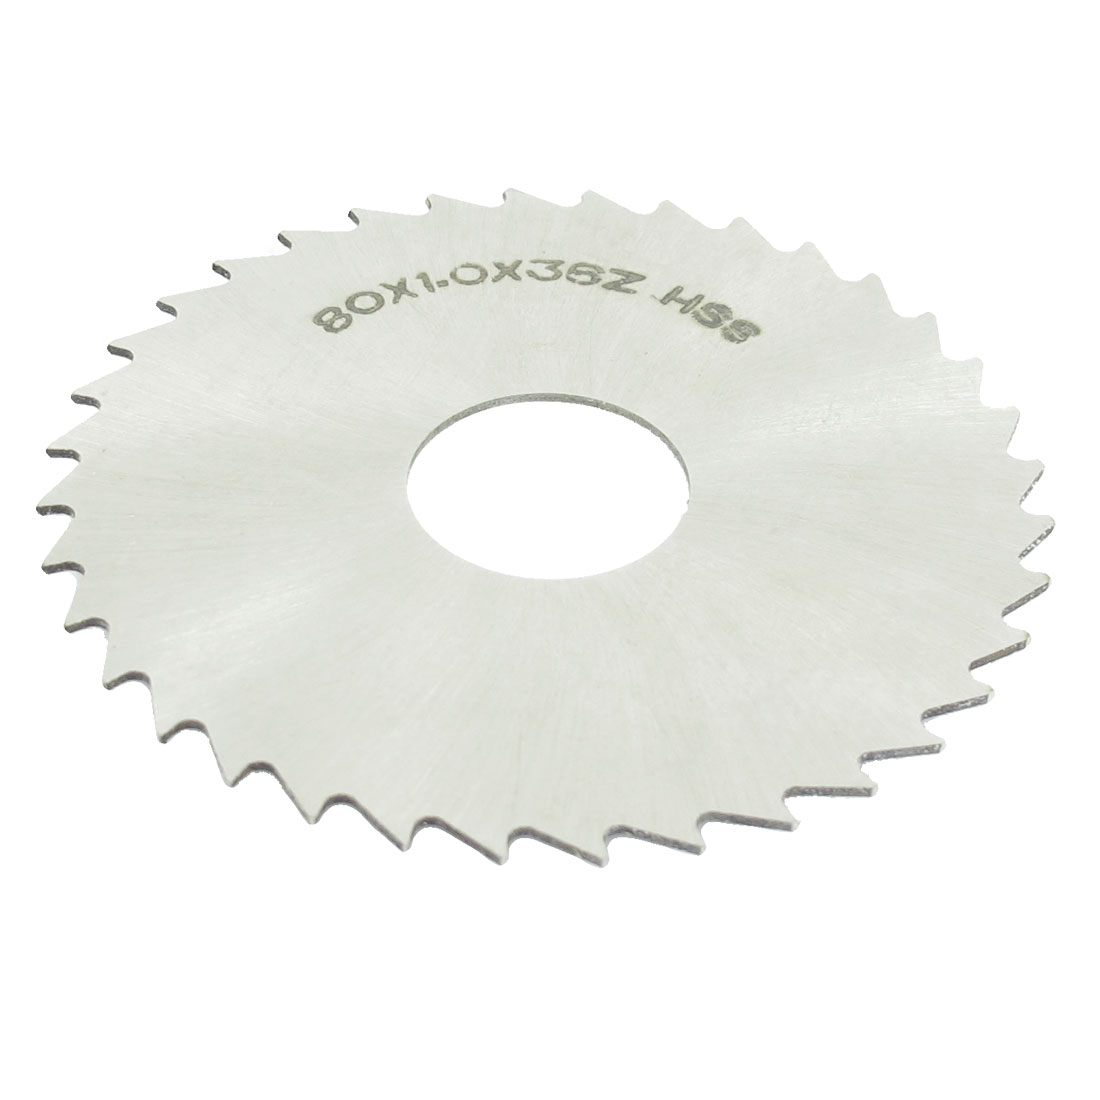 HSS 80mm Dia 1mm Thickness 36 Teeth Circular Milling Cutter Saw